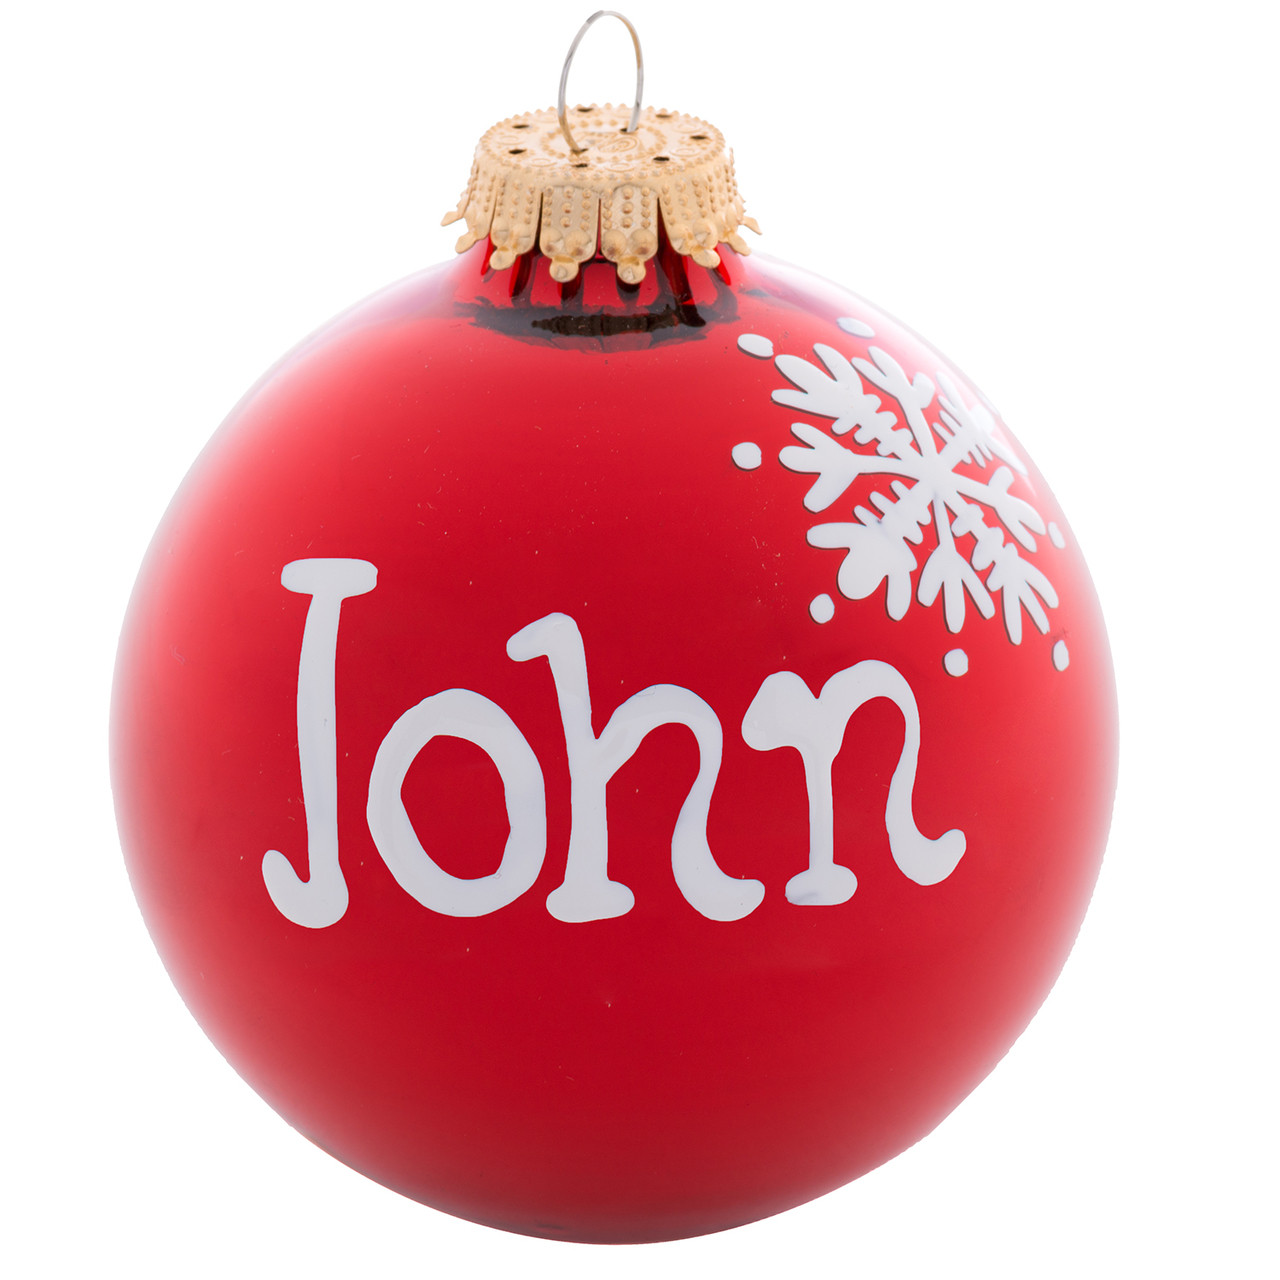 Personalized Christmas Balls.Personalized Christmas Name Ball Ornaments